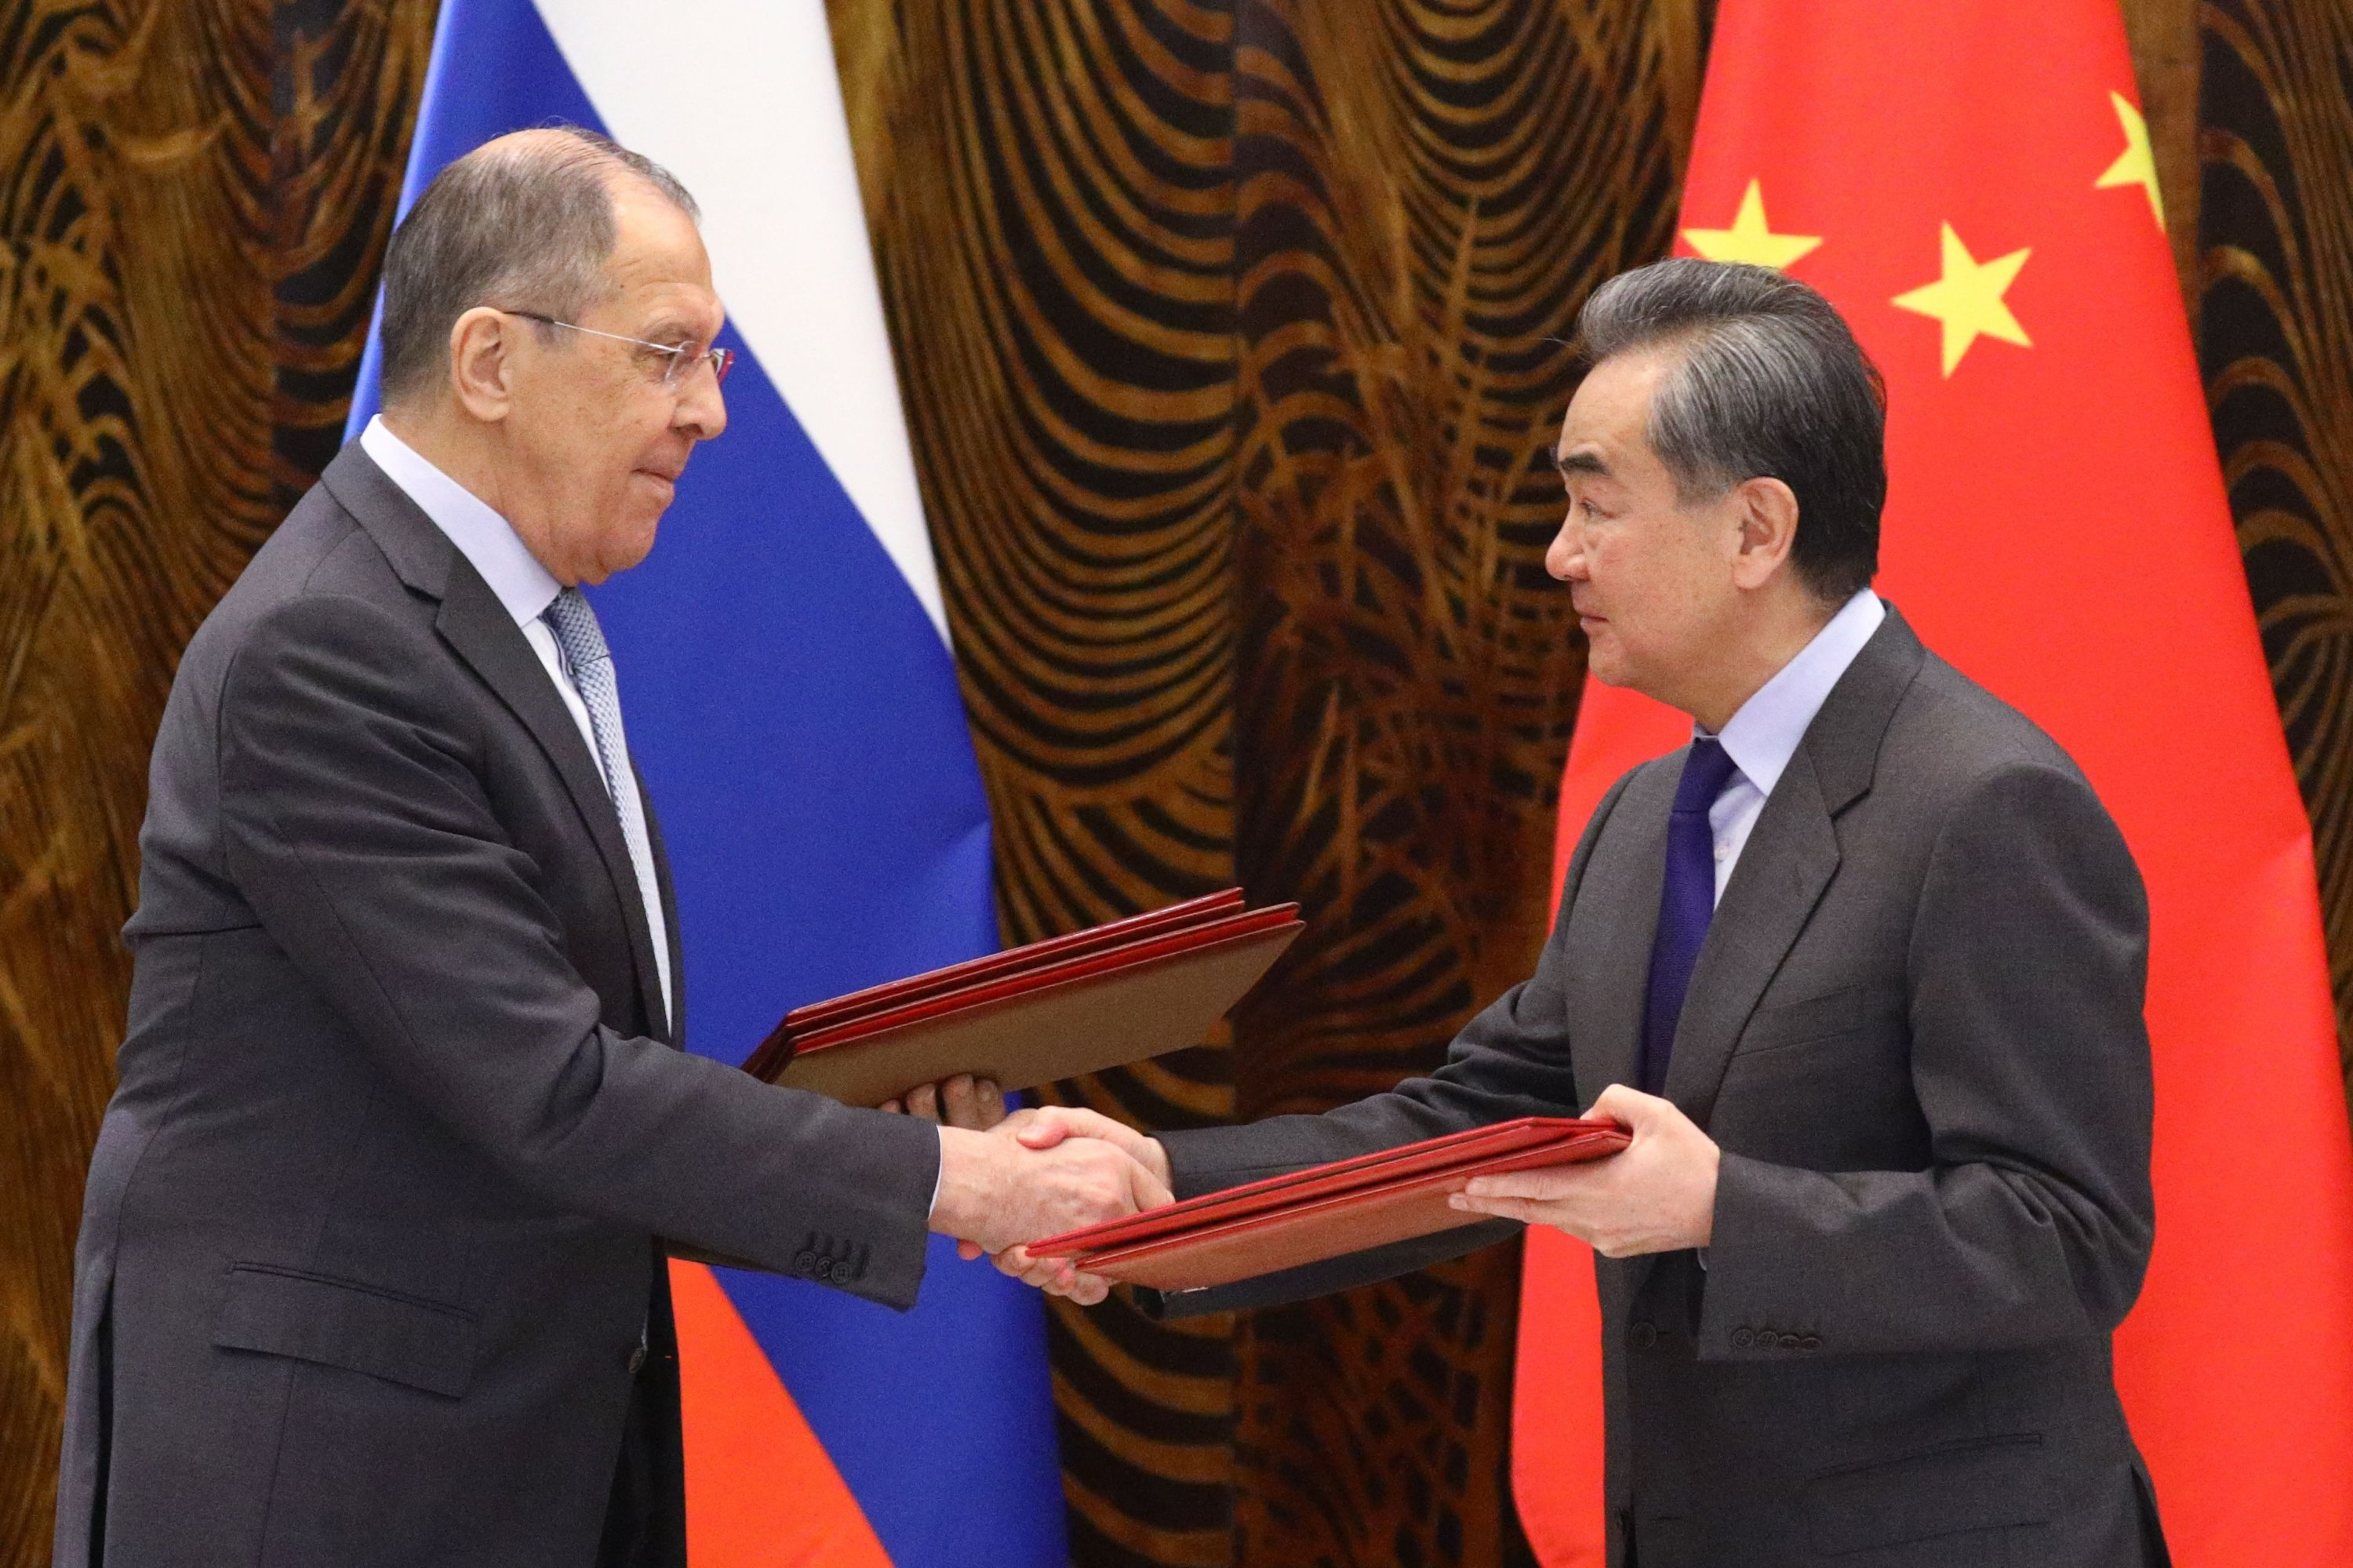 Russian Foreign Minister Sergei Lavrov (L) and Chinese Foreign Minister Wang Yi exchange documents during a signing ceremony following their talks in Guilin, China, March 23, 2021. (Russian Foreign Ministry via AFP)